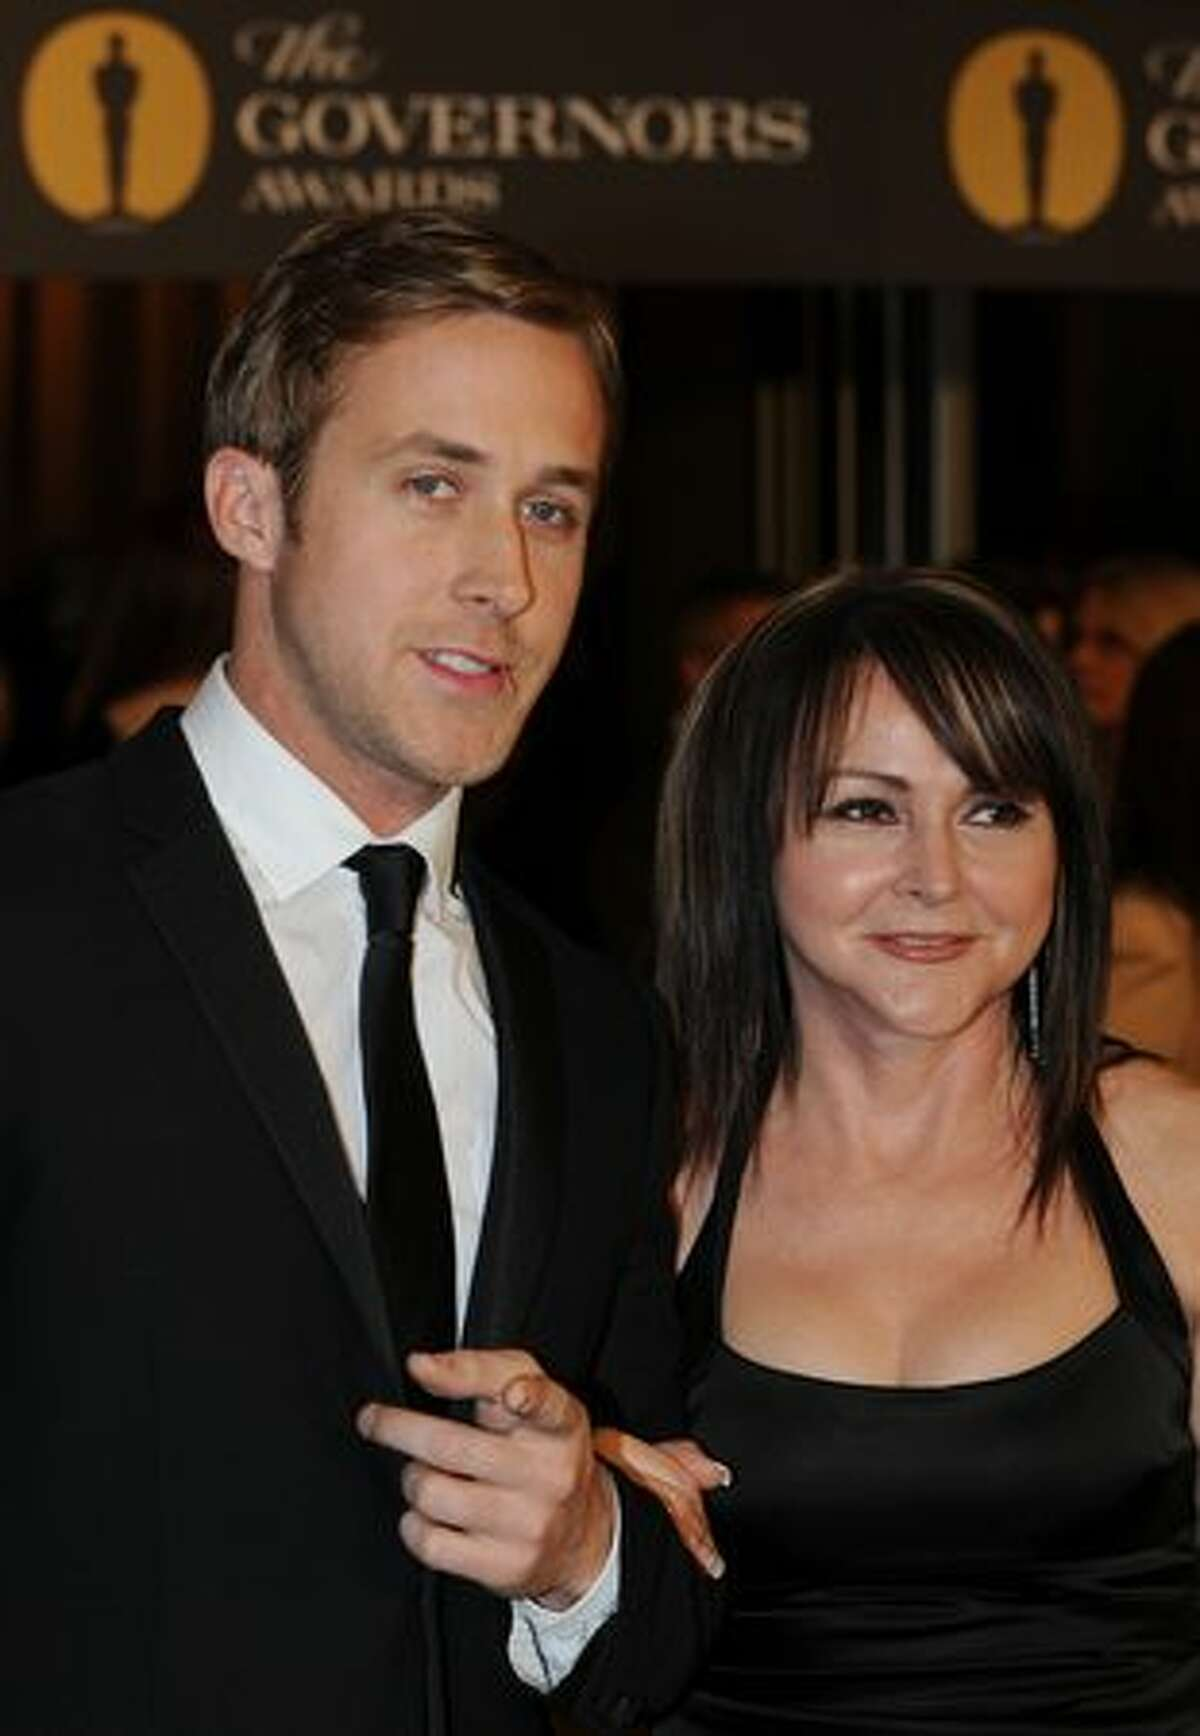 Actor Ryan Gosling and partner arrive on the red carpet for the 2010 Oscars Governors Ball at the Hollywood and Highland Center in Hollywood.